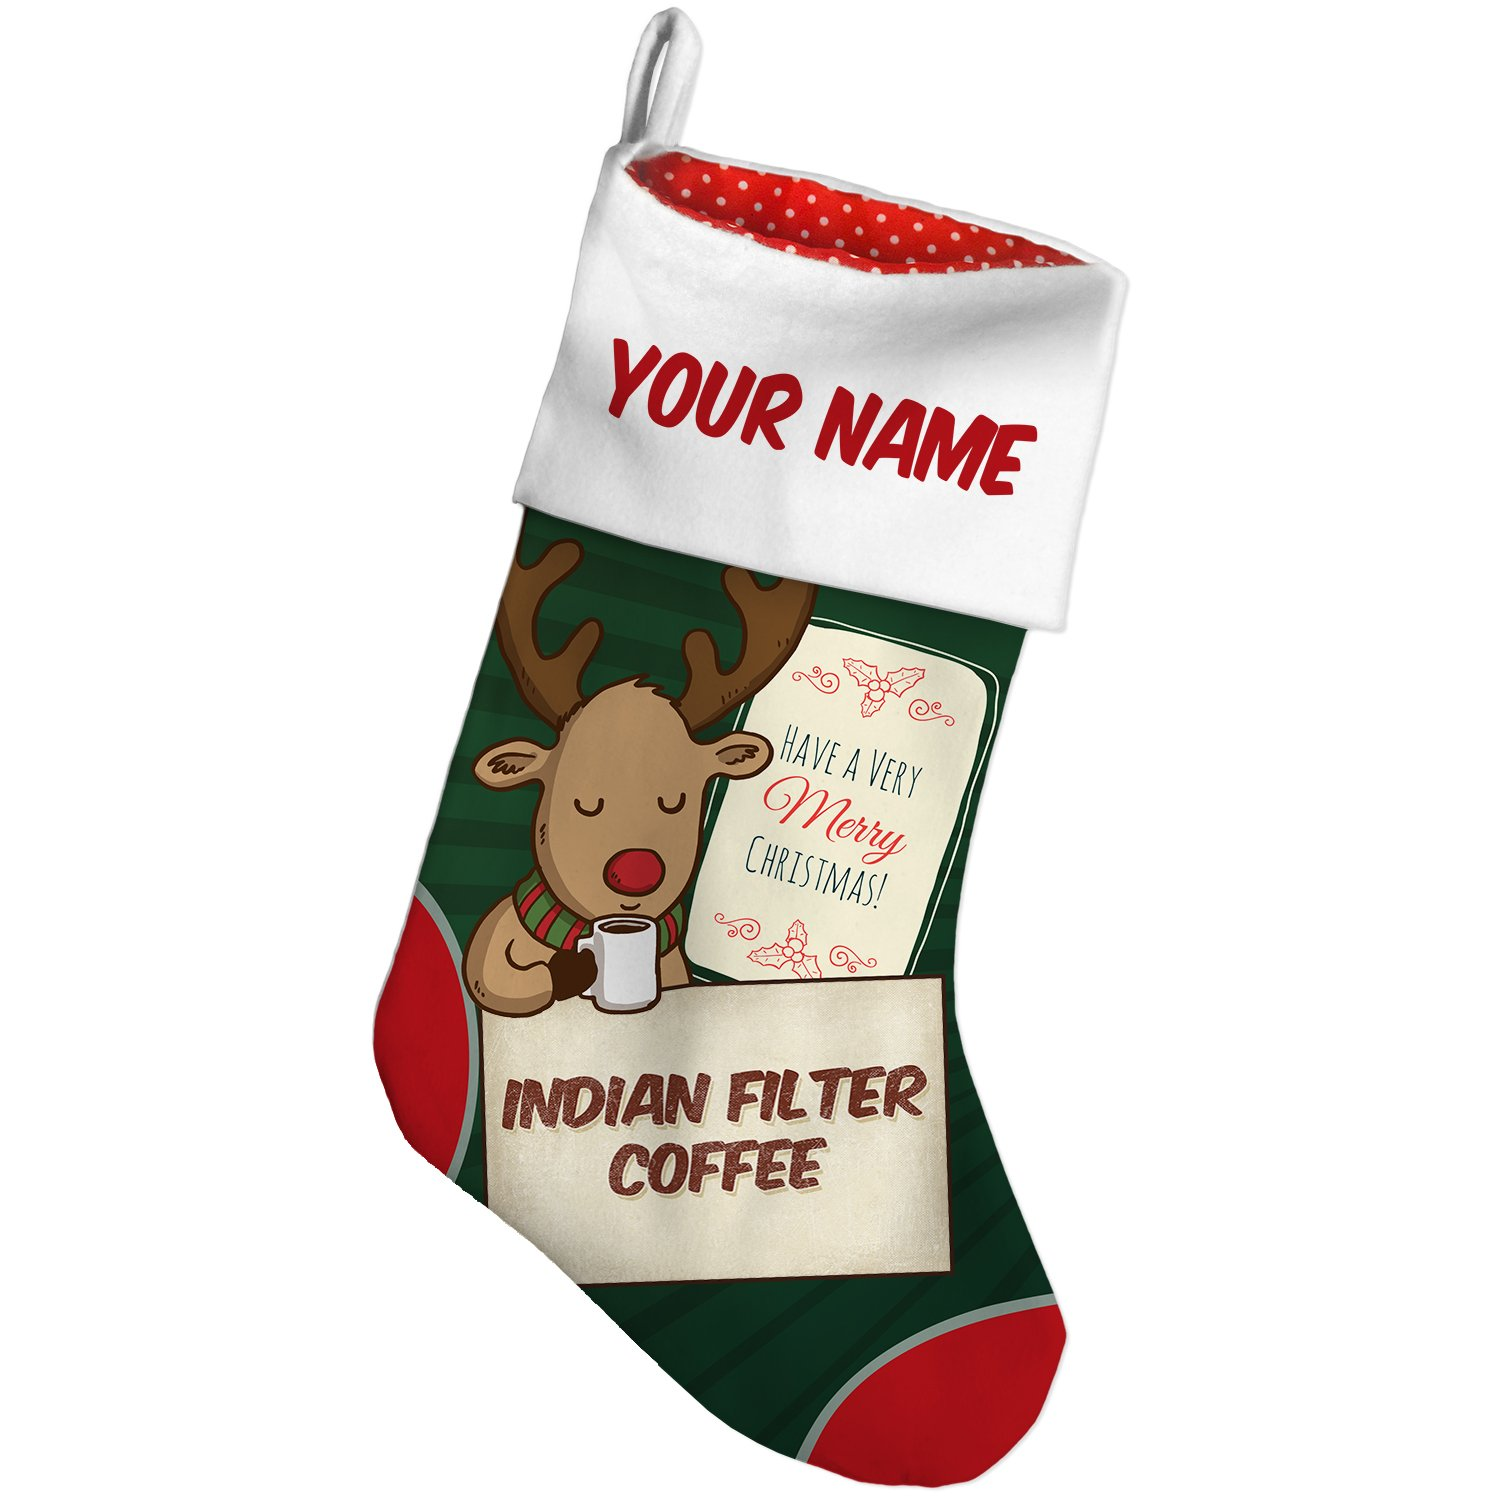 Amazon.com: Christmas Stocking Indian filter Coffee, Vintage style ...